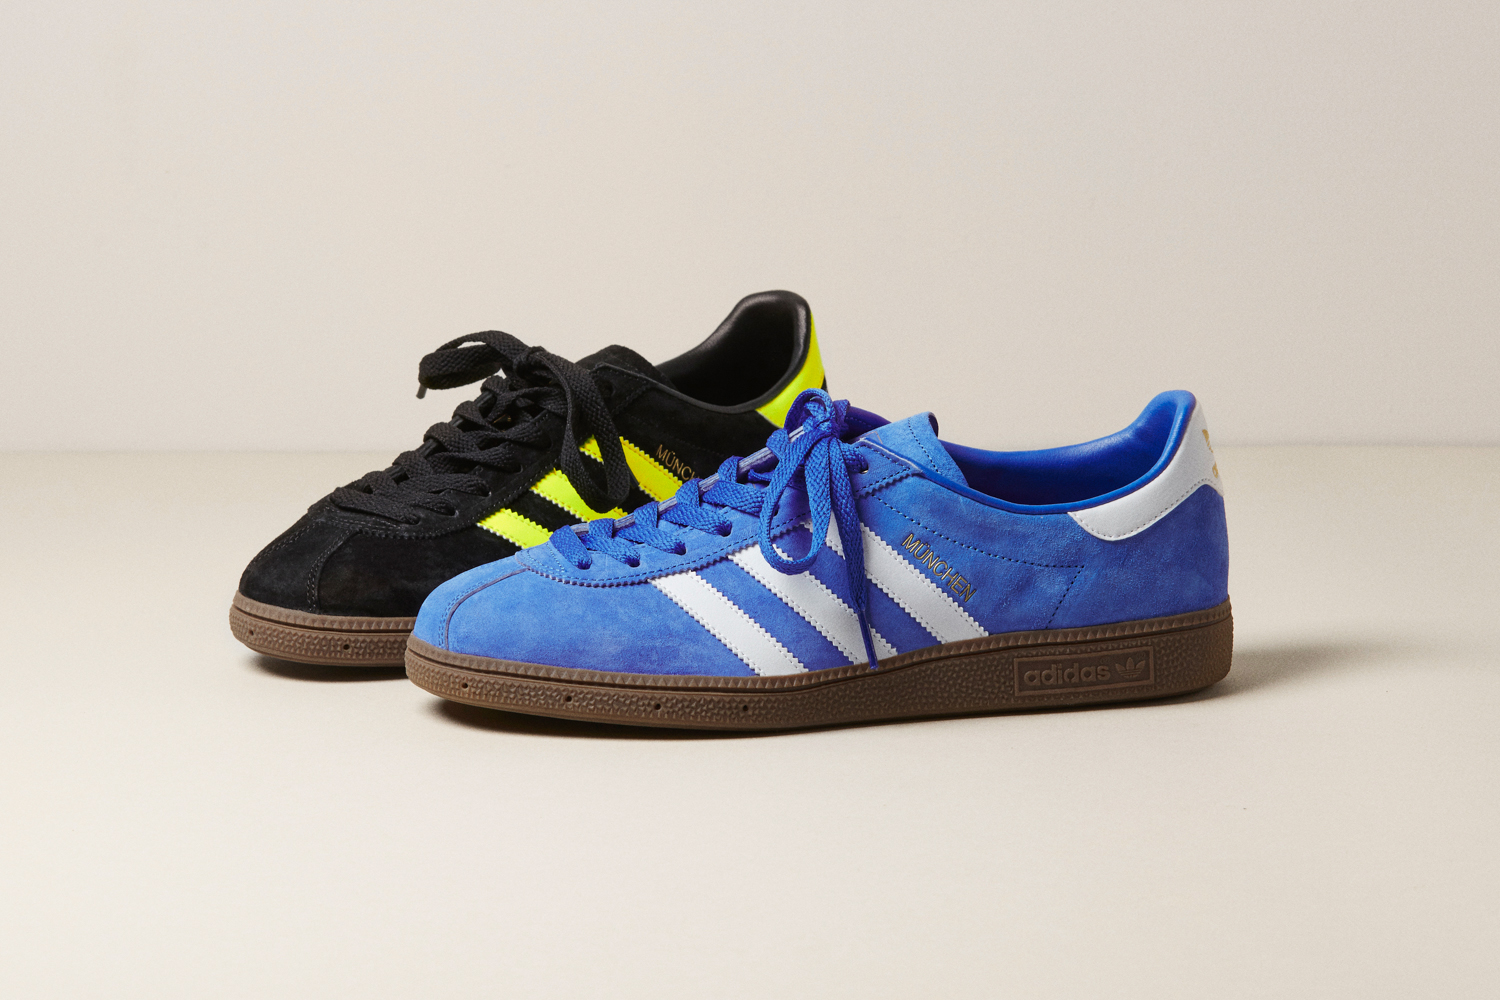 bf78595a6cab9 adidas munchen spezial archive size exclusive-3